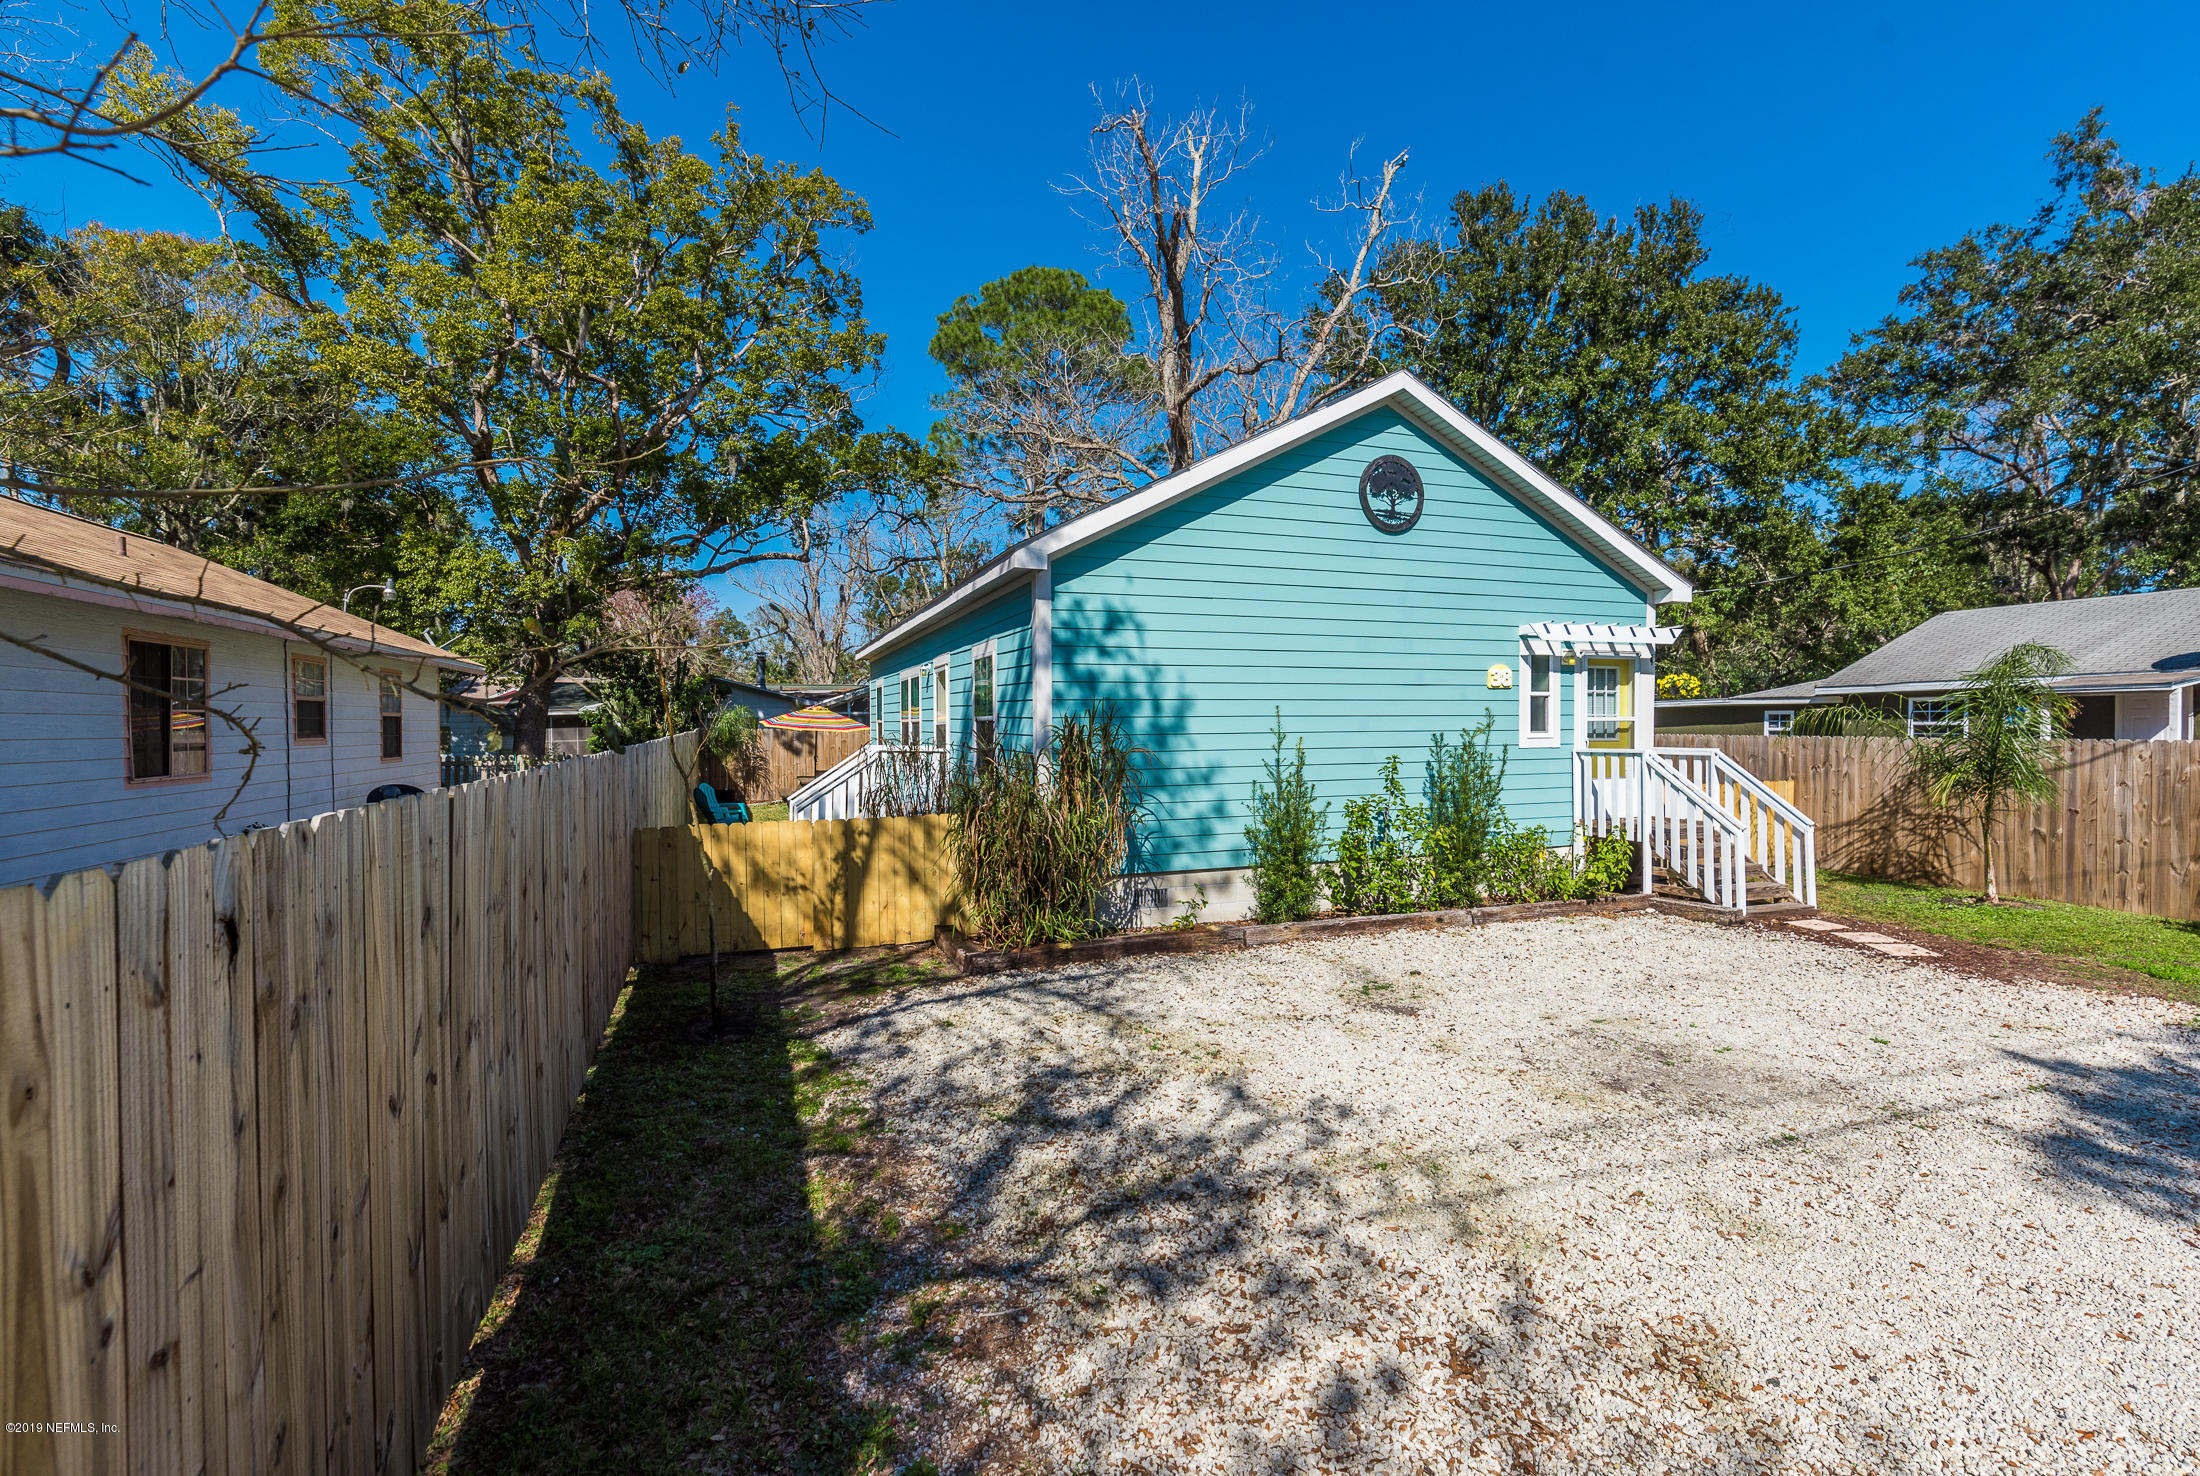 38 SMITH, ST AUGUSTINE, FLORIDA 32084, 3 Bedrooms Bedrooms, ,2 BathroomsBathrooms,Residential - single family,For sale,SMITH,953158